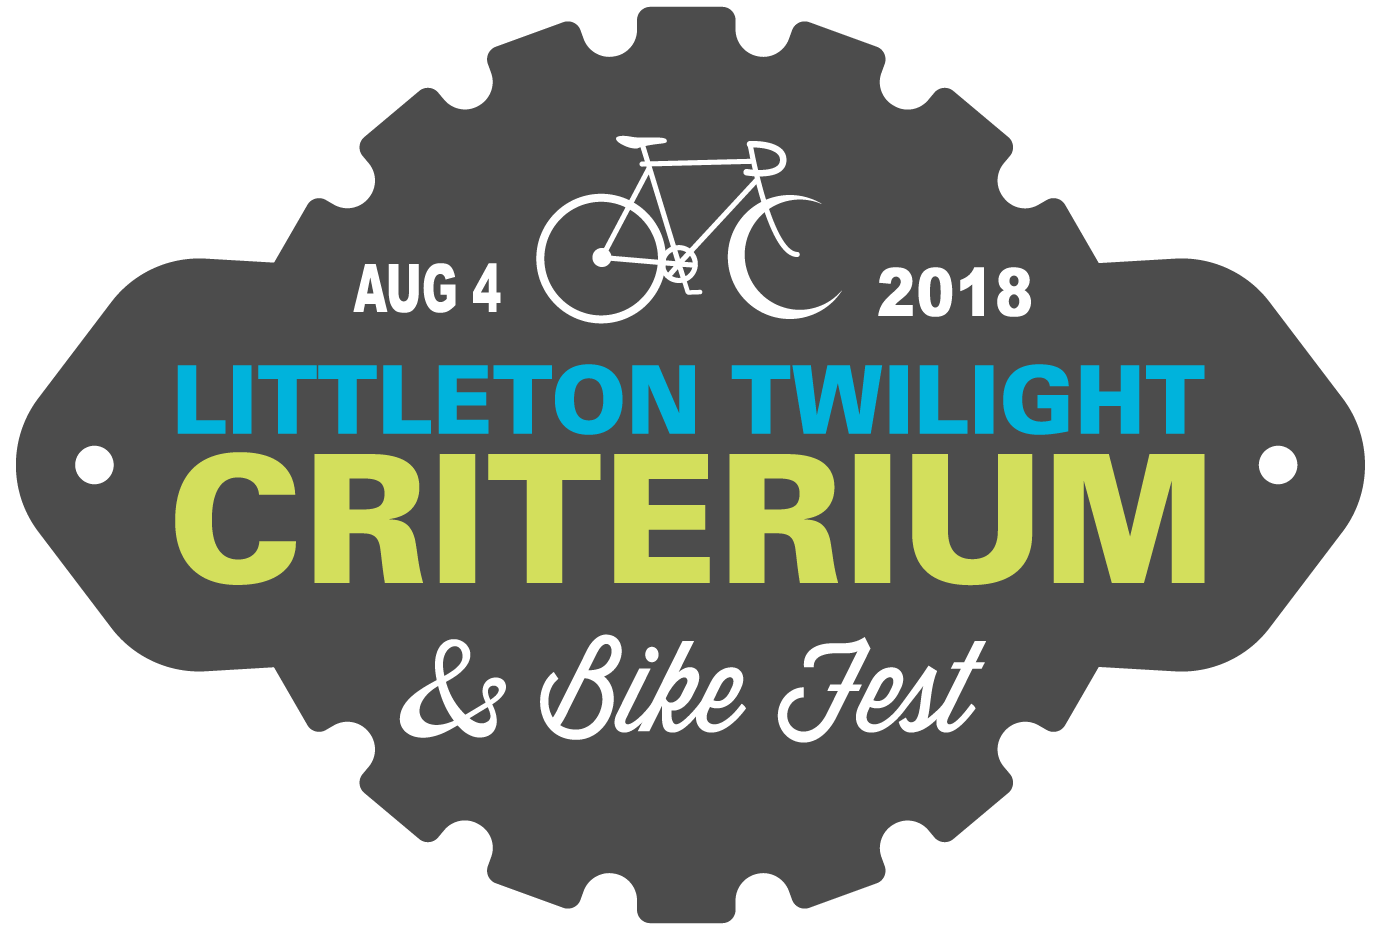 Littleton Twilight Criterium & Bike Fest badge